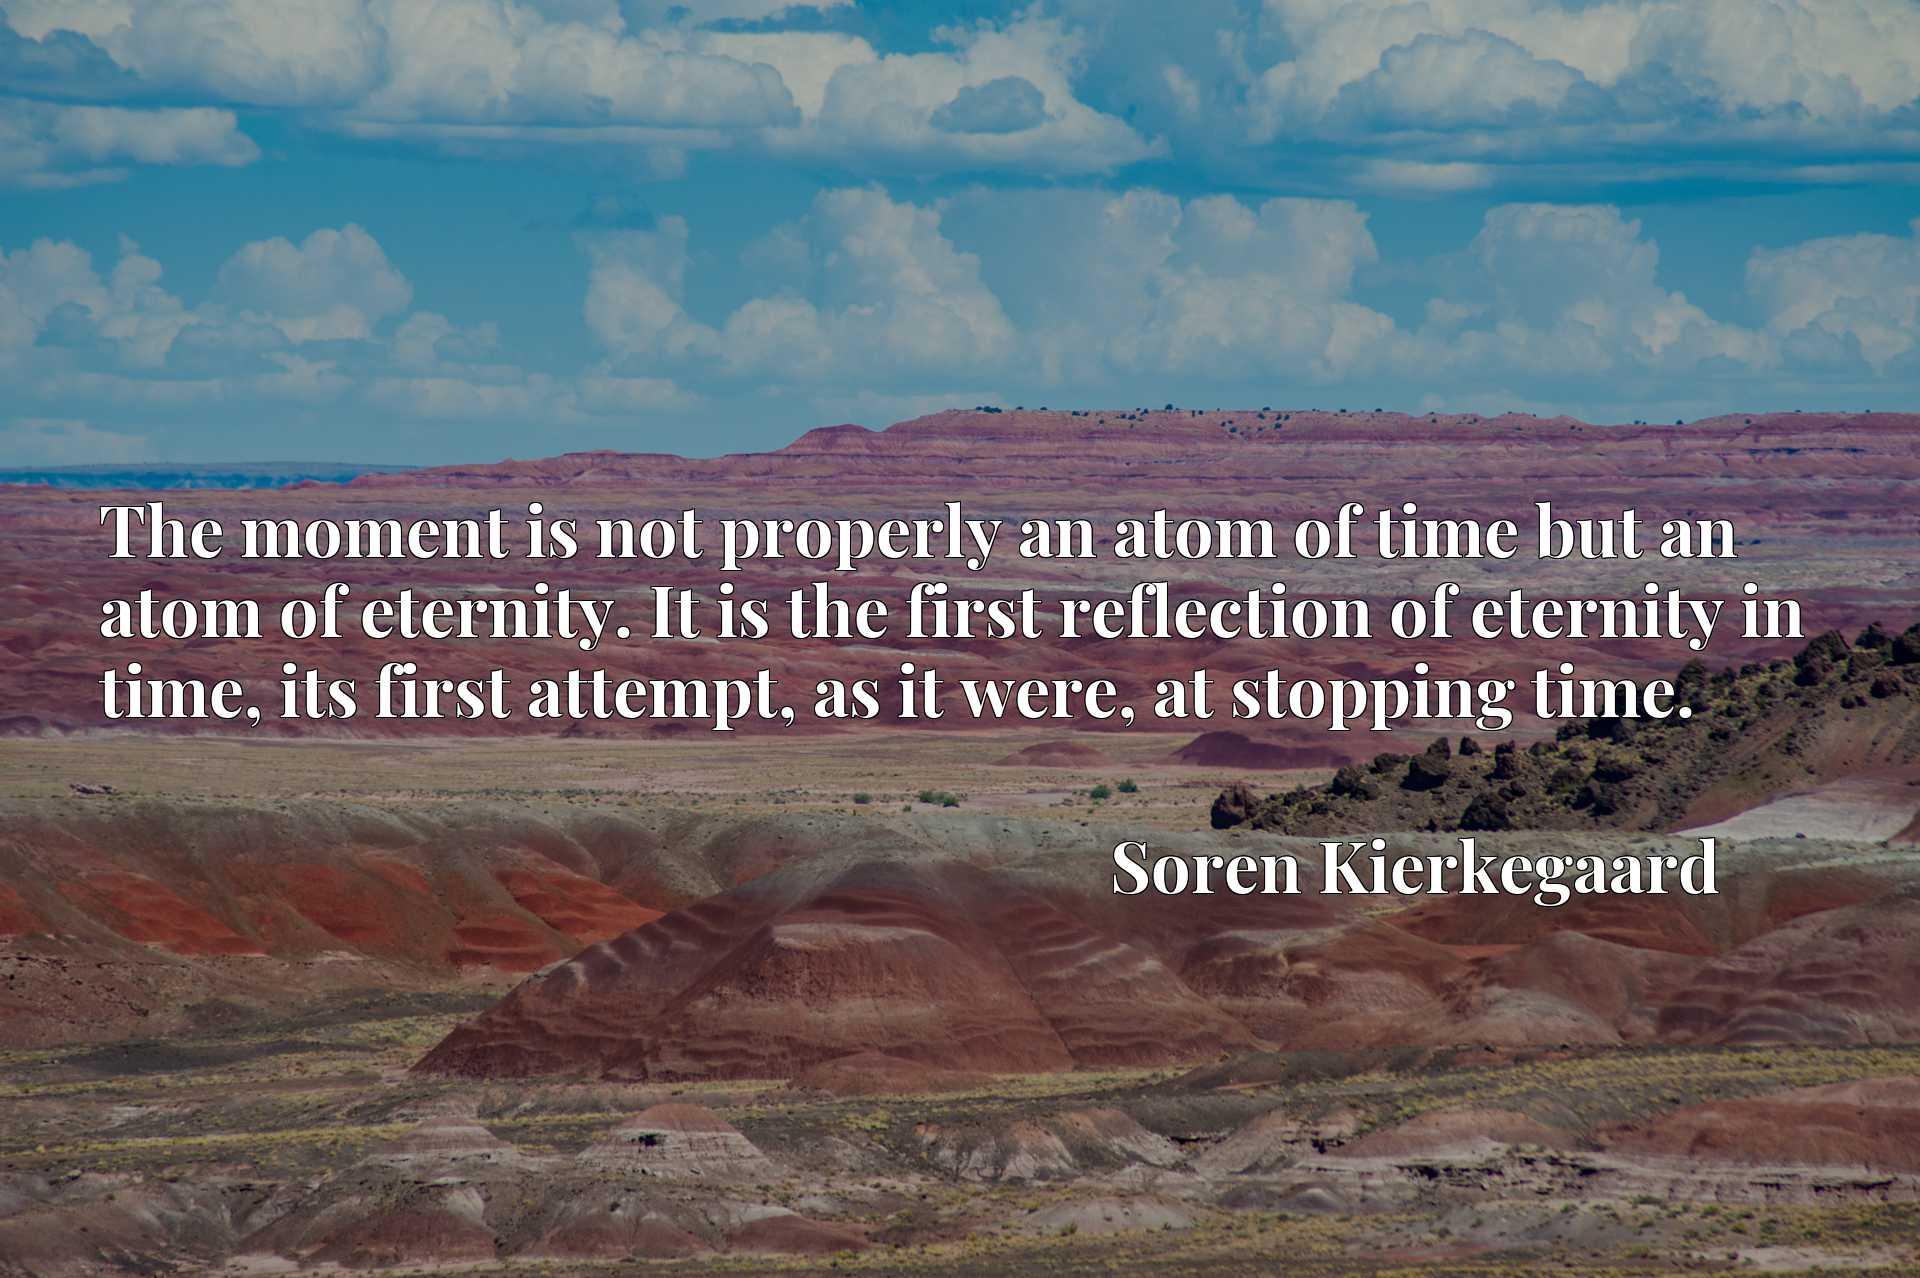 The moment is not properly an atom of time but an atom of eternity. It is the first reflection of eternity in time, its first attempt, as it were, at stopping time.